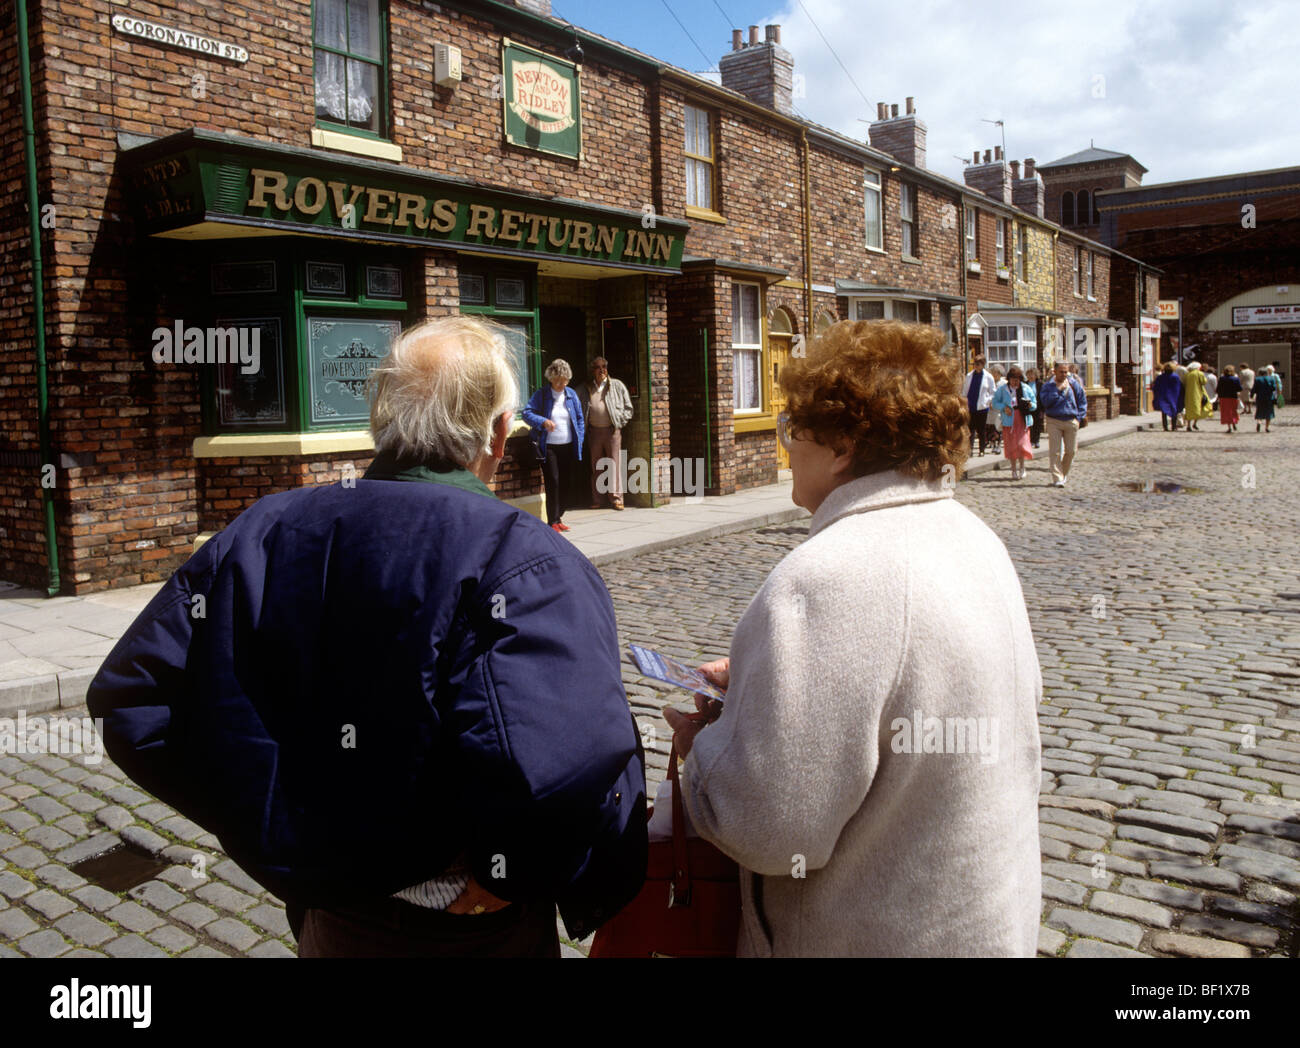 UK, England, Manchester, Granada Television Studio visitors on Coronation Street set - Stock Image